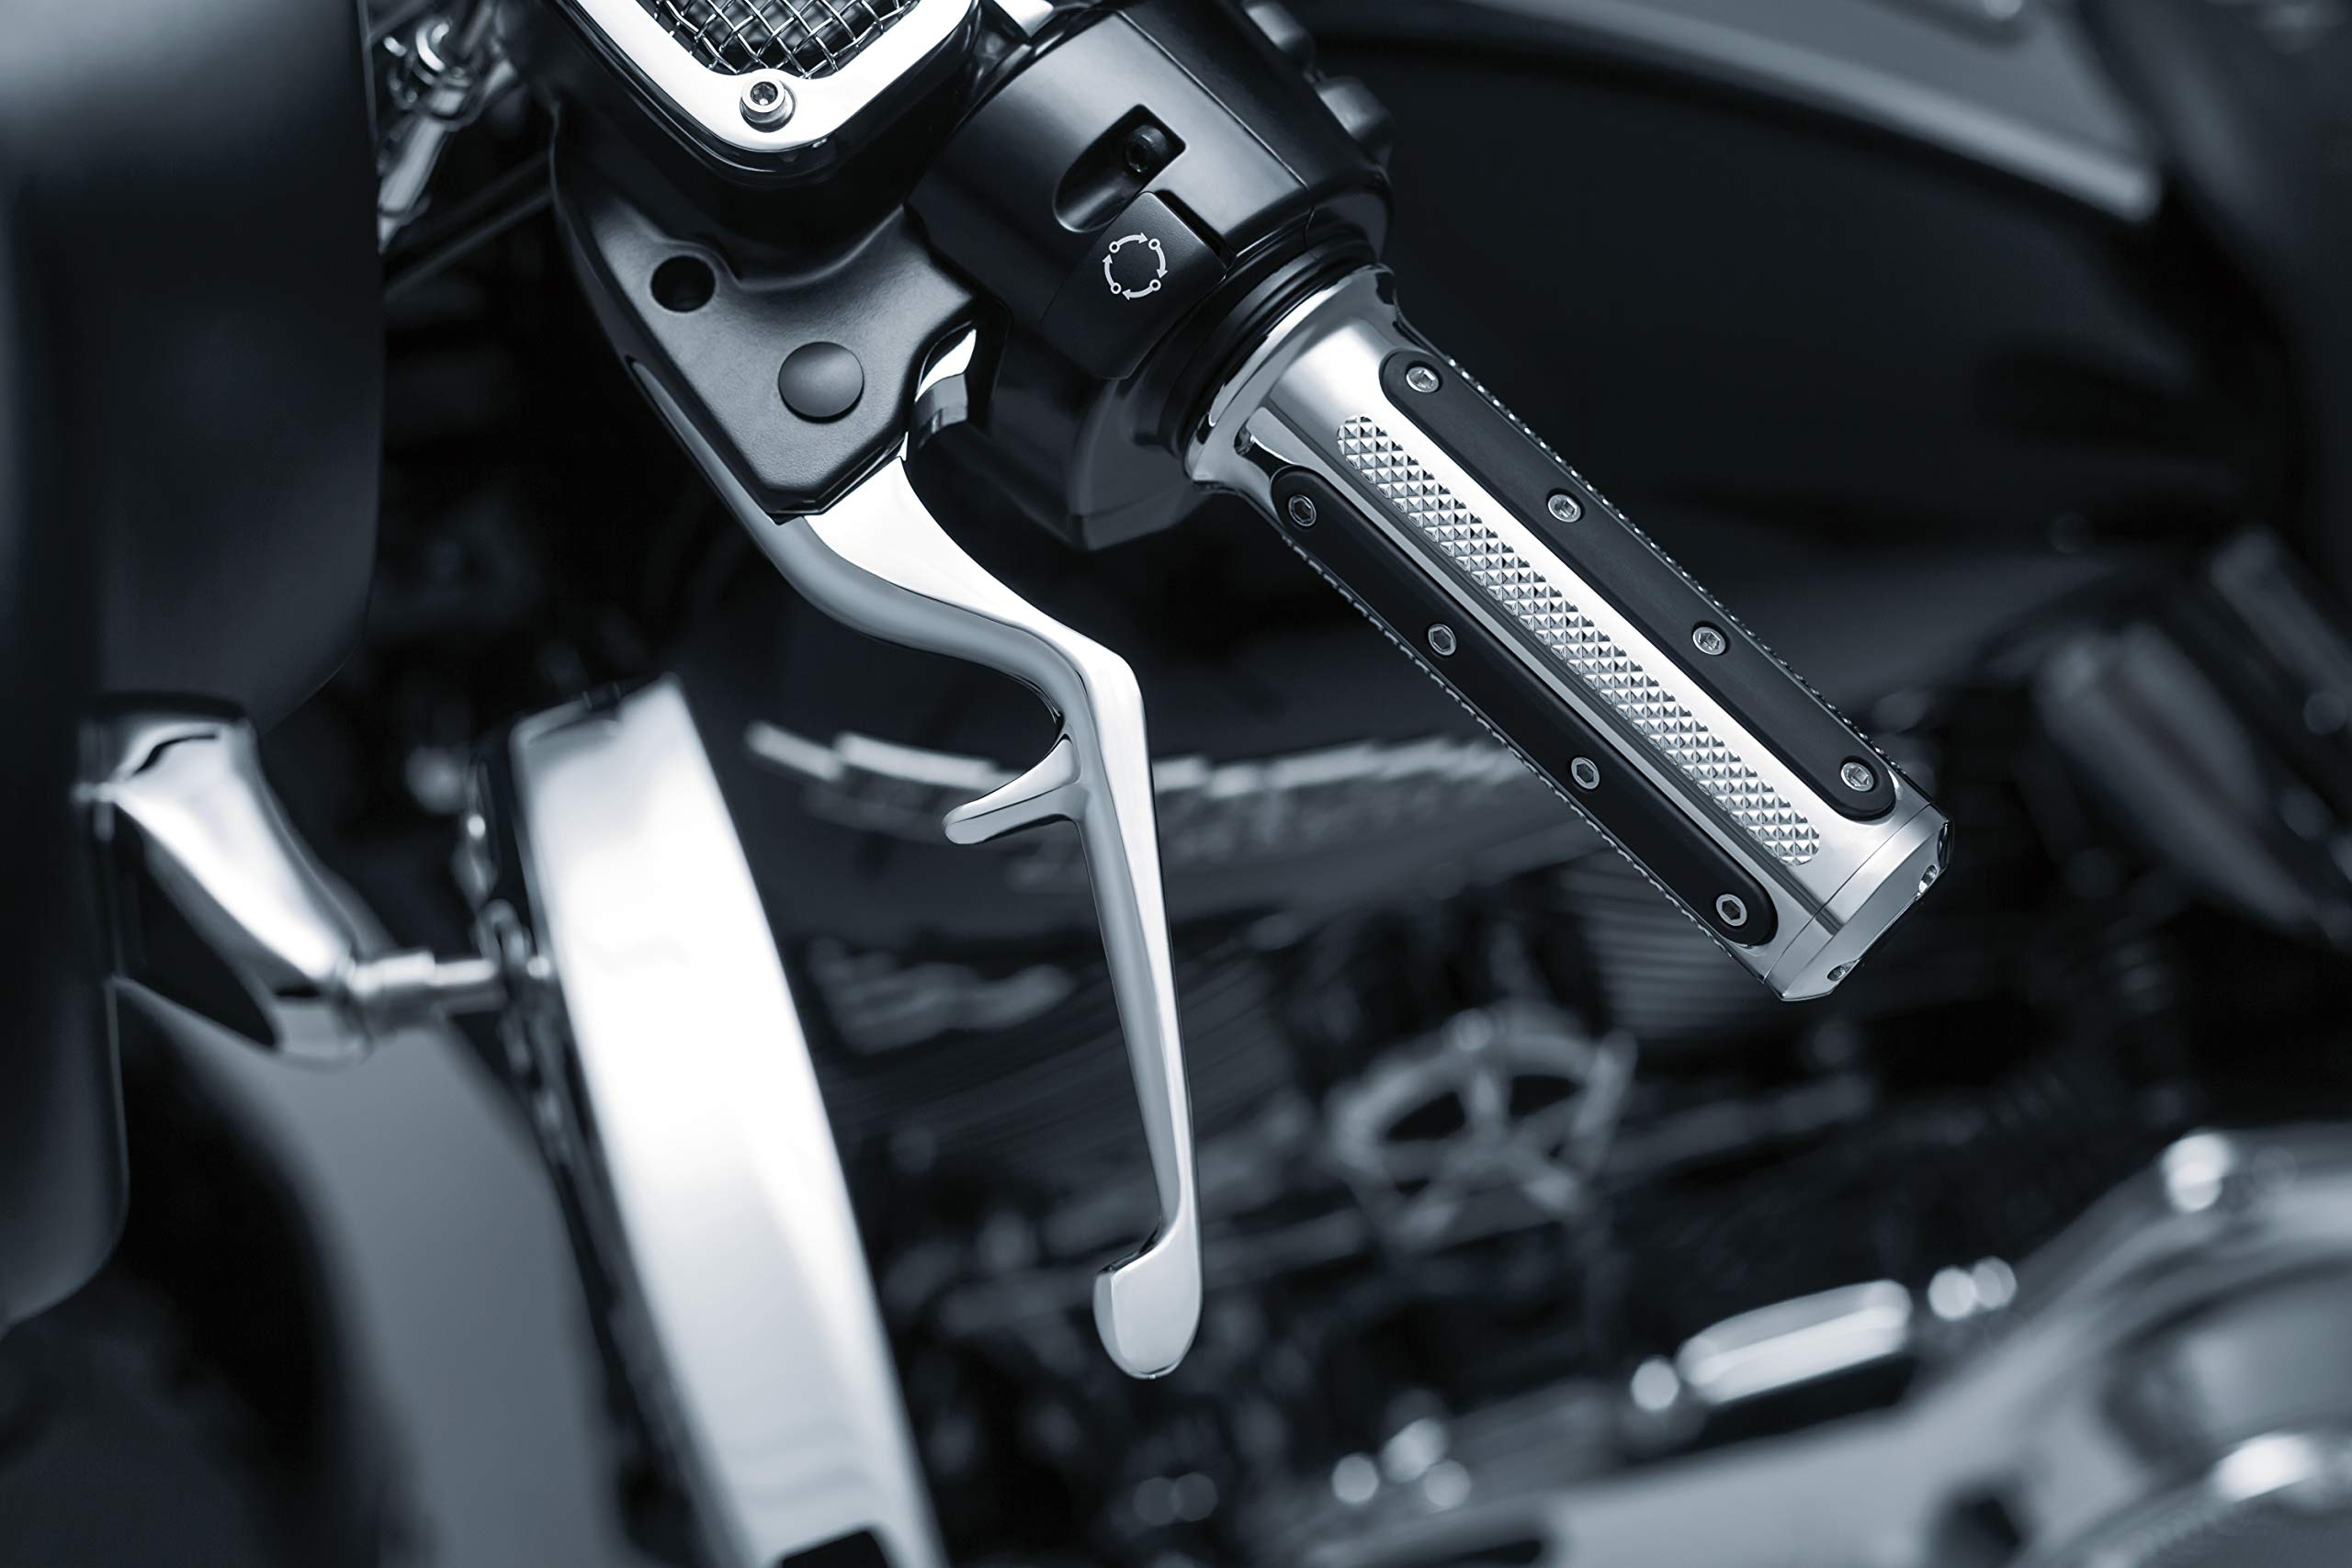 Kuryakyn 1843 Motorcycle Handlebar Accessory: Clutch and Brake Trigger Levers for 2014-16 Harley-Davidson Touring Motorcycles, Chrome, 1 Pair by Kuryakyn